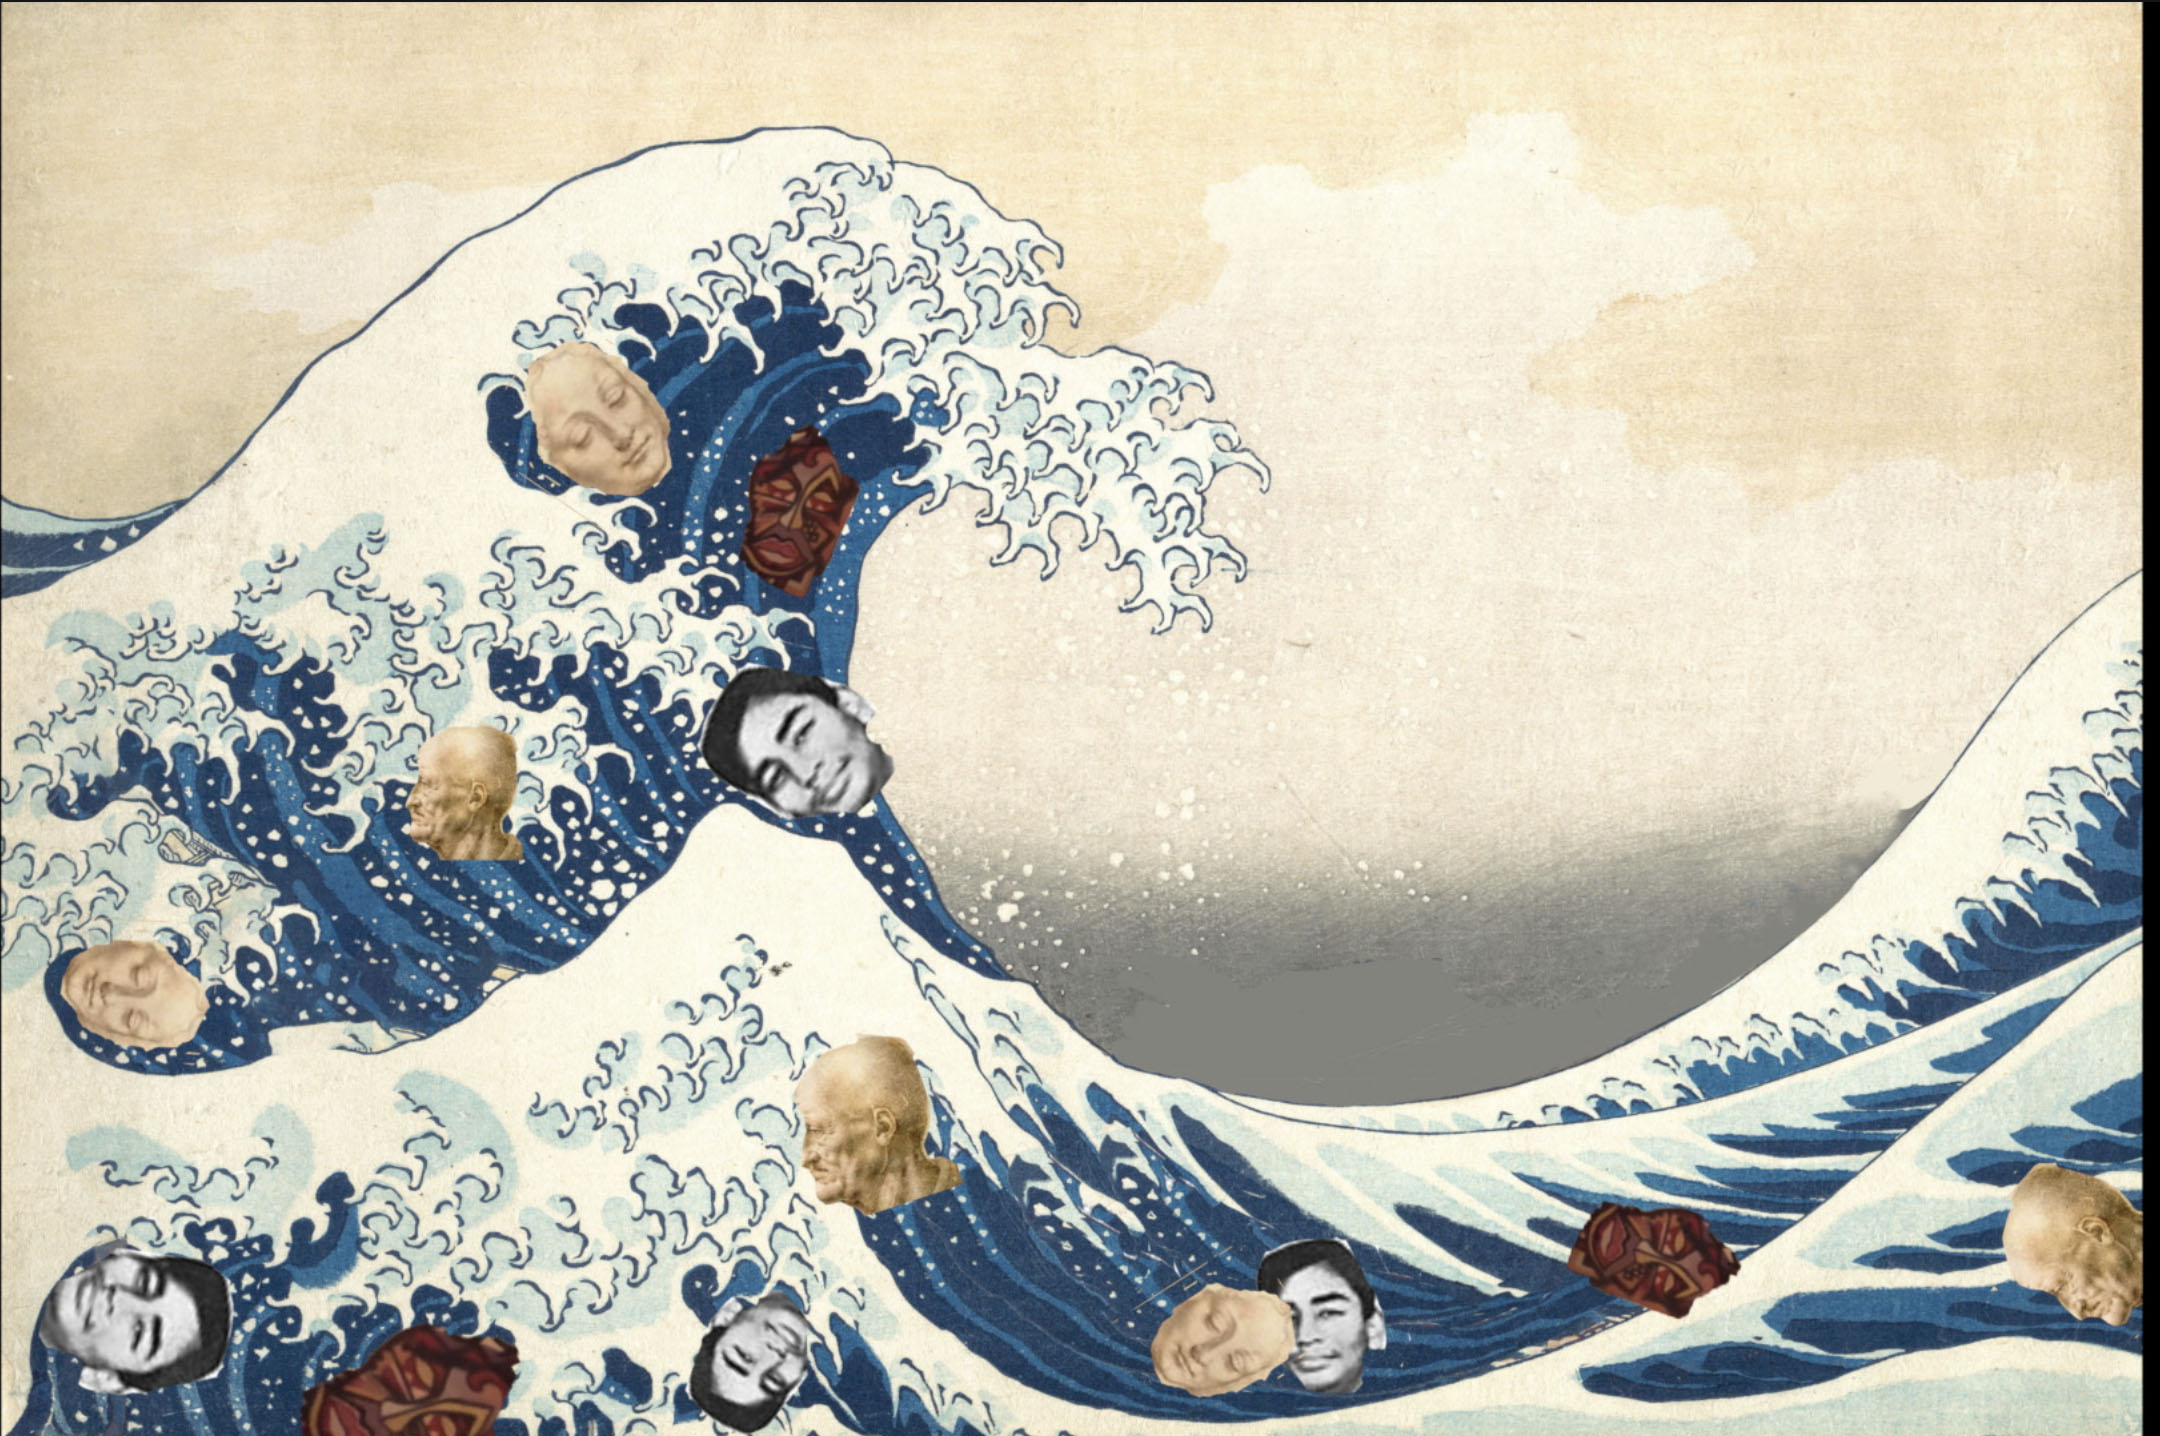 part of the Hokusai wave - with multicultural heads to show the black, brown and white people caught up and destroyed in the pandemic